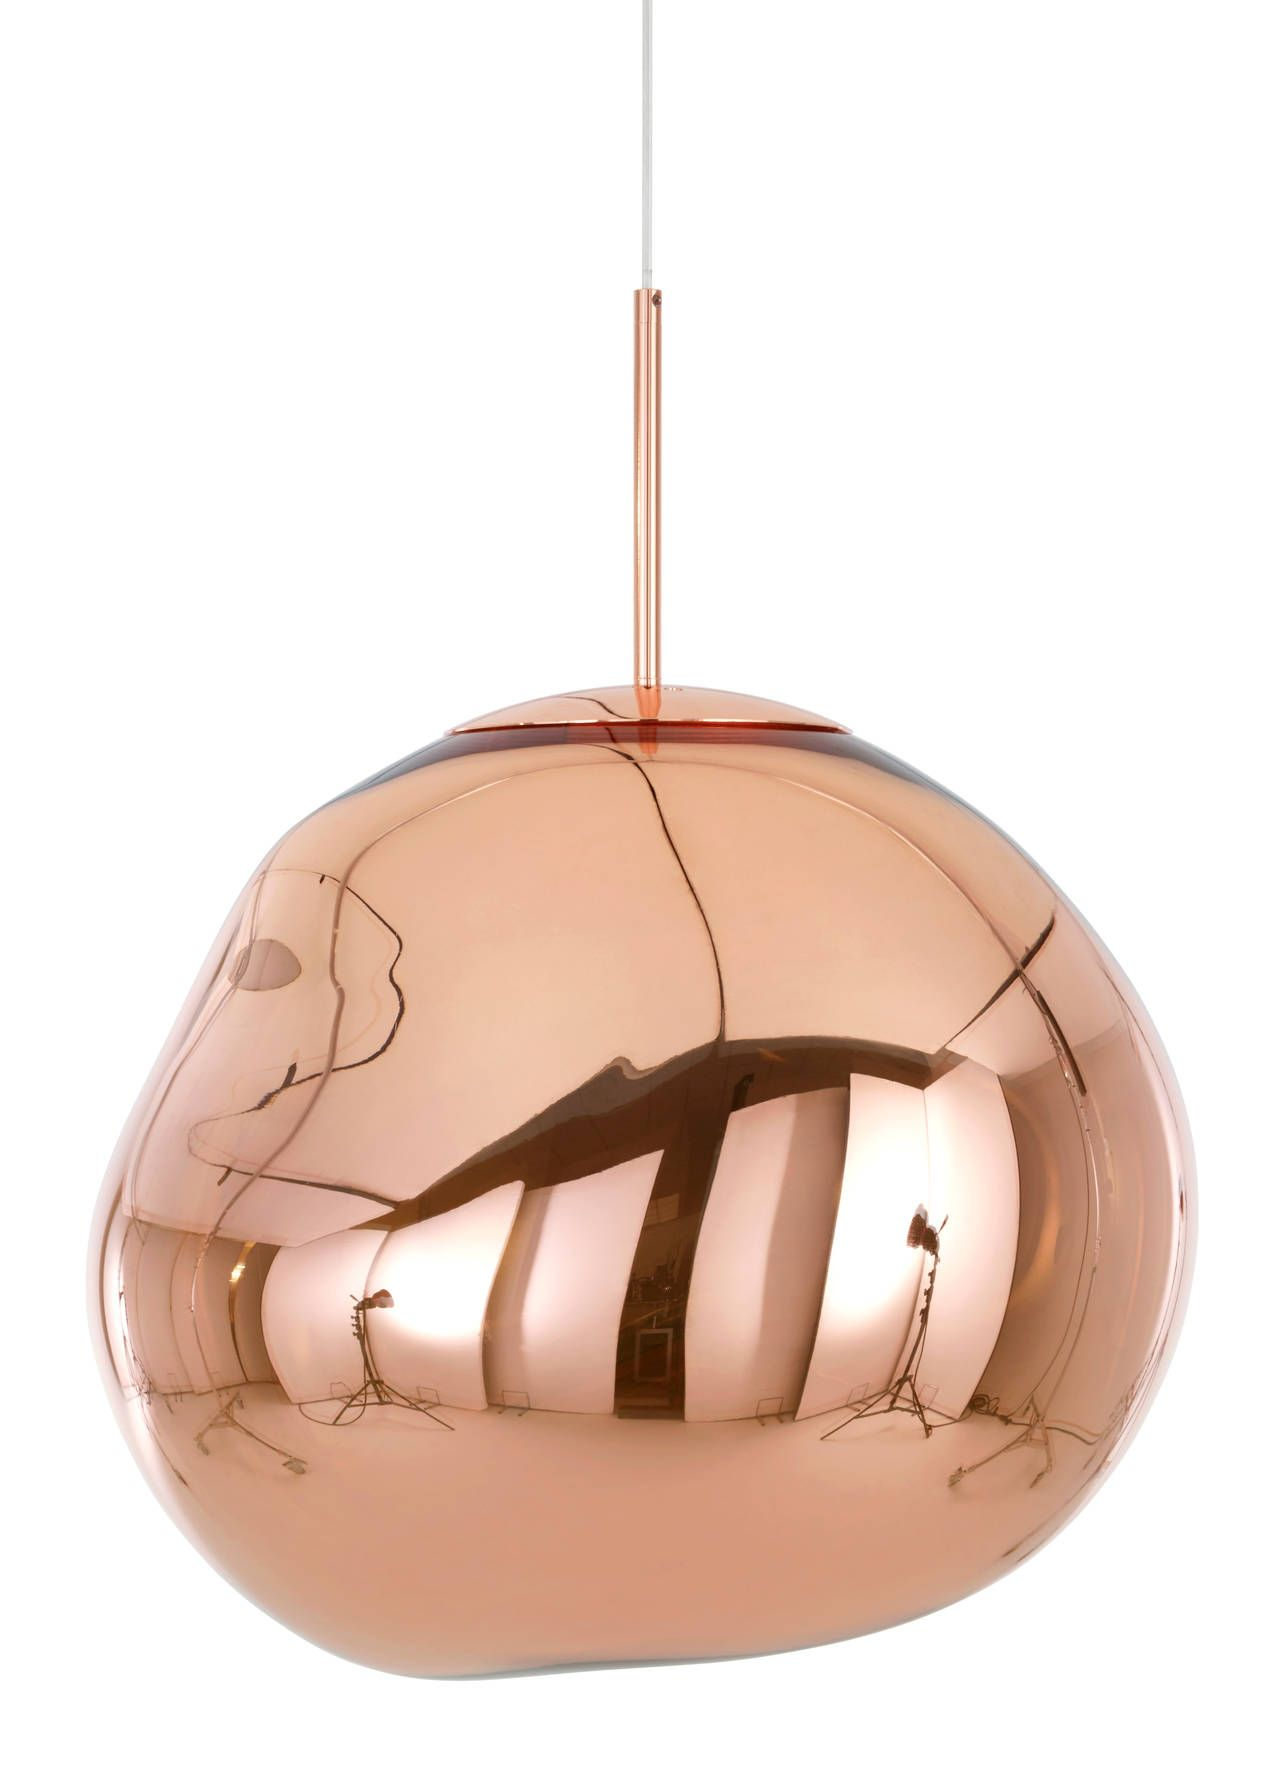 Melt Pendant In Copper By Tom Dixon Copper Pendant Lights Tom Dixon Mini Pendant Lights